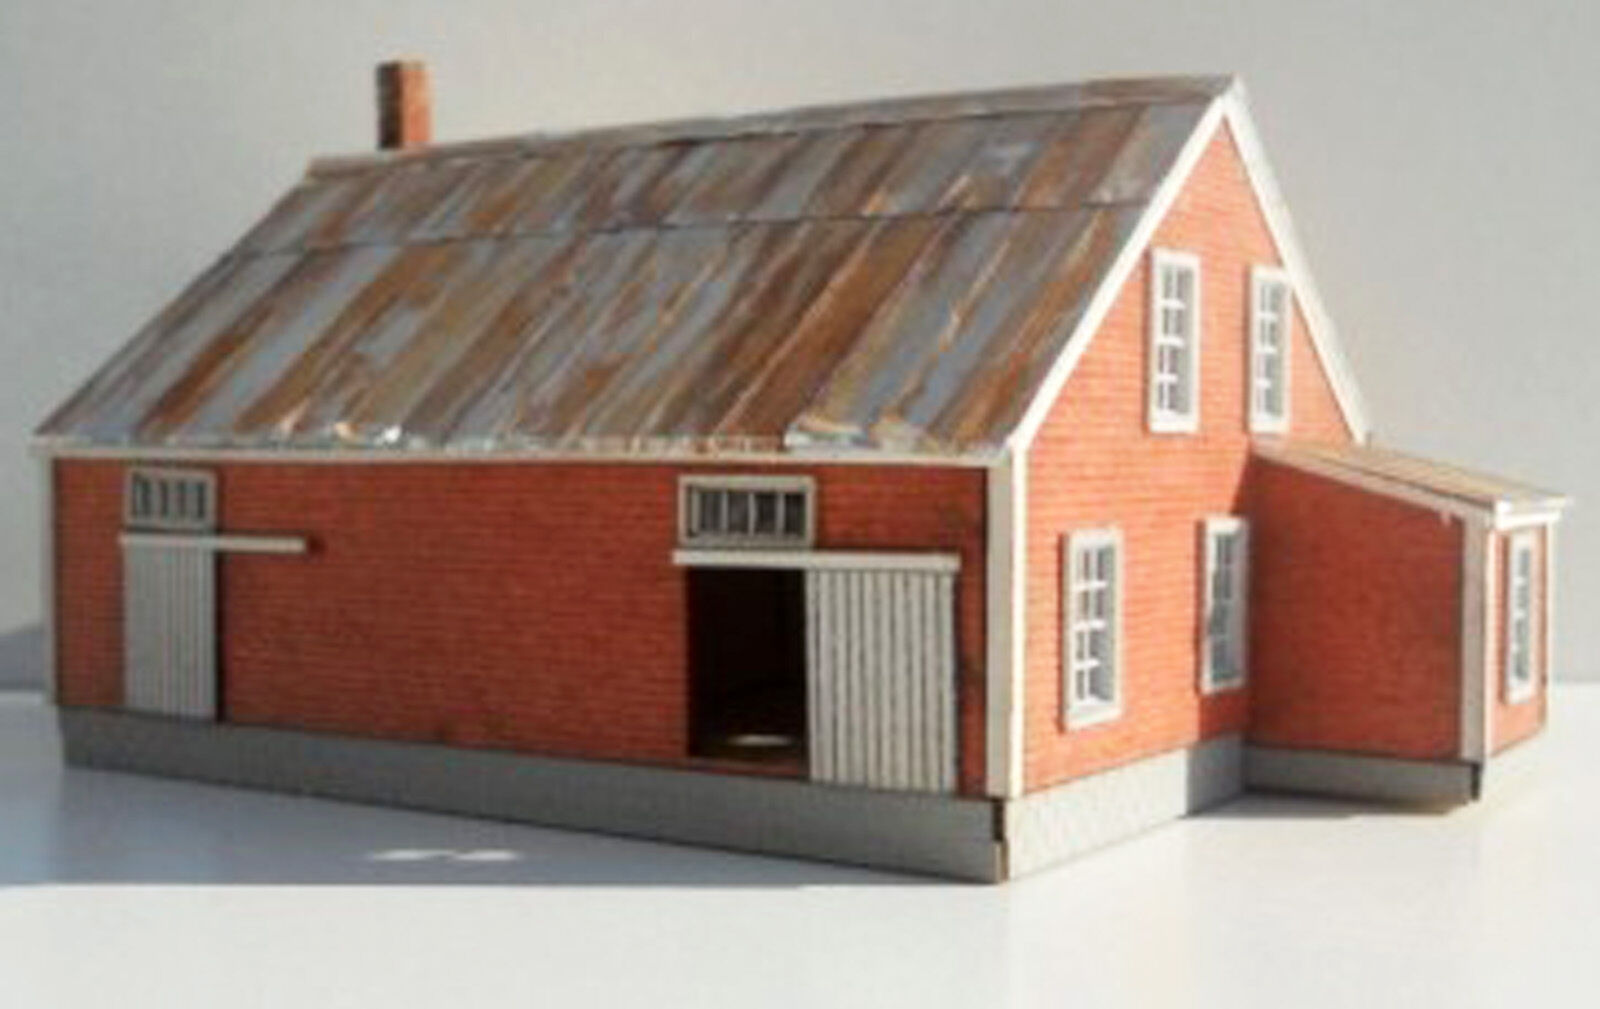 BARREL FACTORY N Scale Scale Scale Model Railroad Structure Unpainted Wood Laser Kit RSL3047 0a7d1f